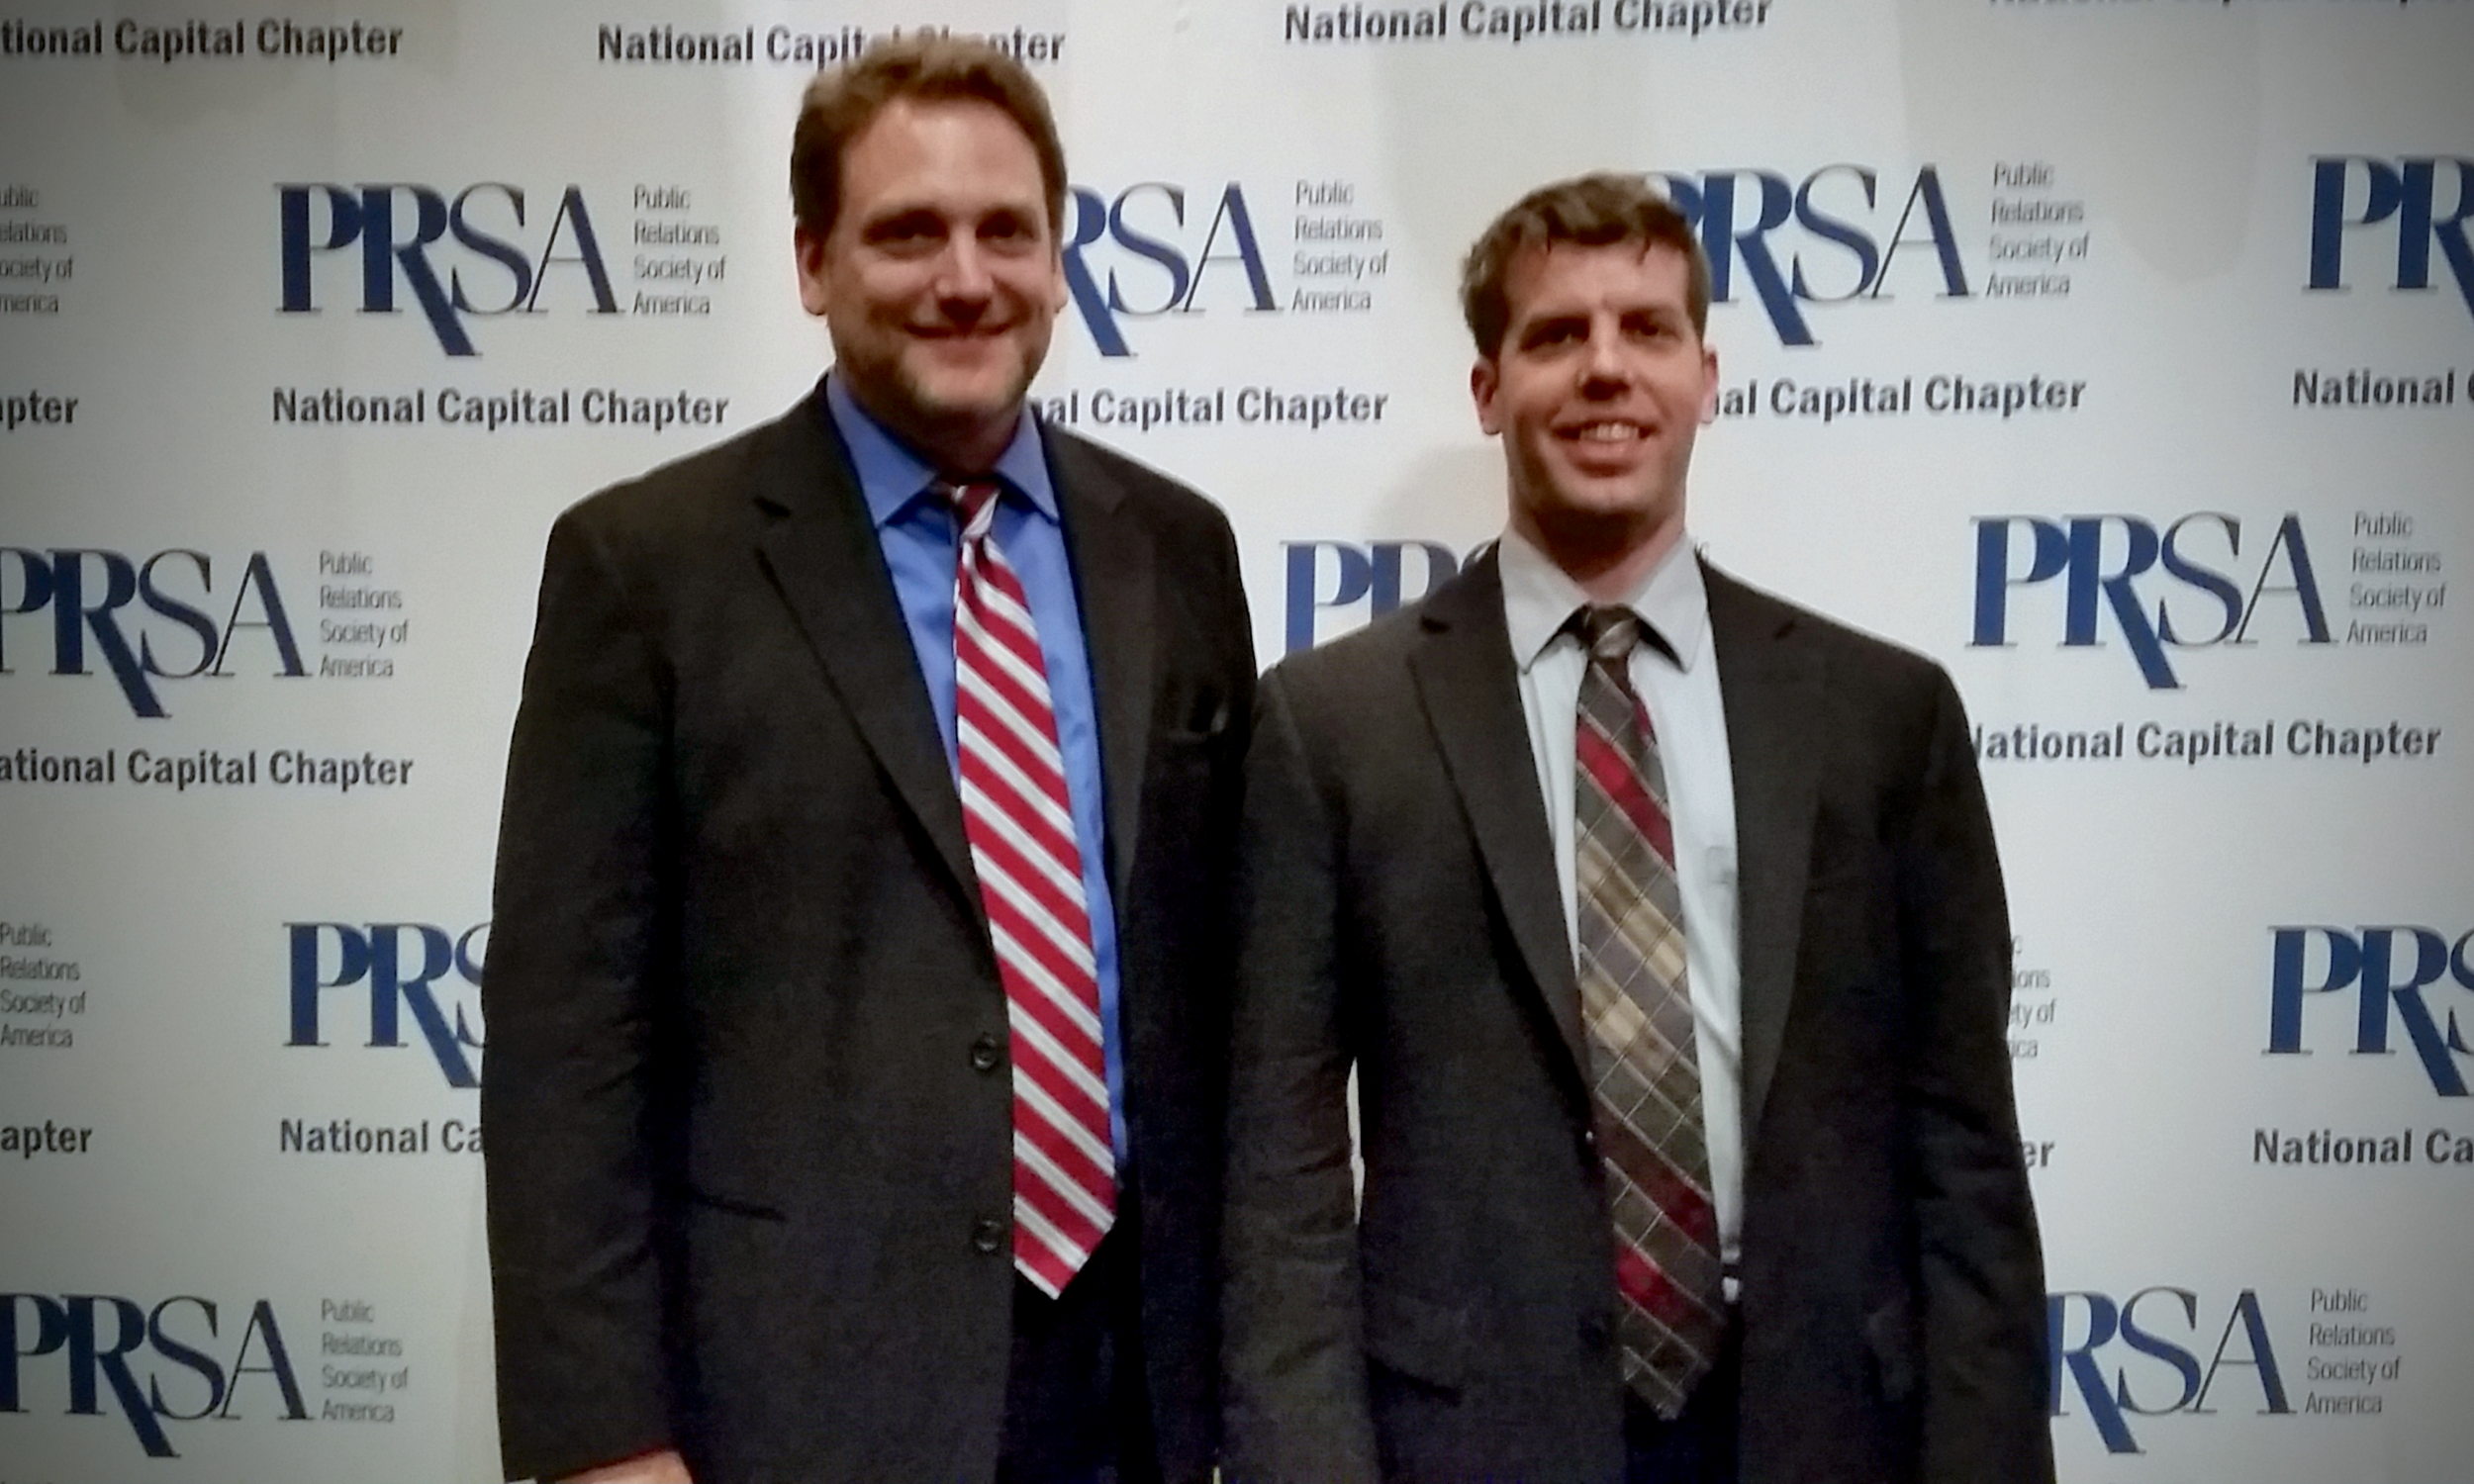 Dale Curtis and Peter Morscheck at the 2015 Thoth Awards, presented by the PRSA National Capital Chapter